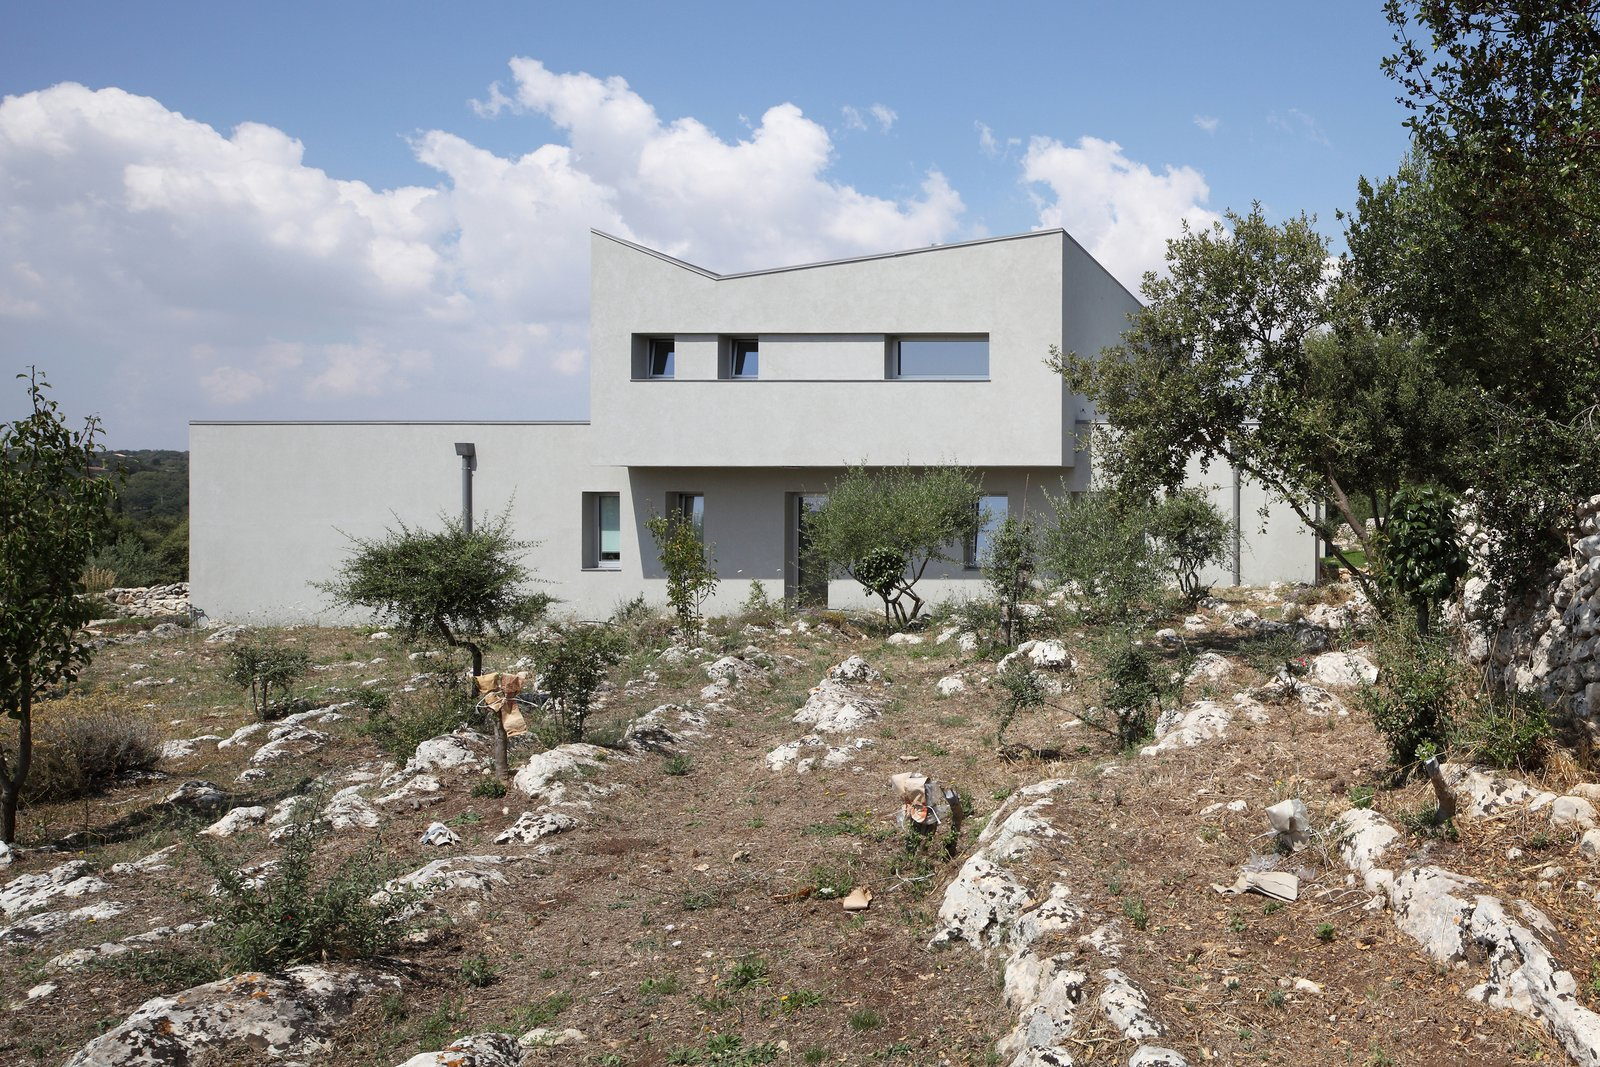 """A modern rendition of Mediterranean architecture combines with sparse landscaping to create a simple, minimalist feel. The climate, according to the architect, varies from """"the warmest African sunny days in summer [to] cold, rainy, and snowy days in winter."""""""